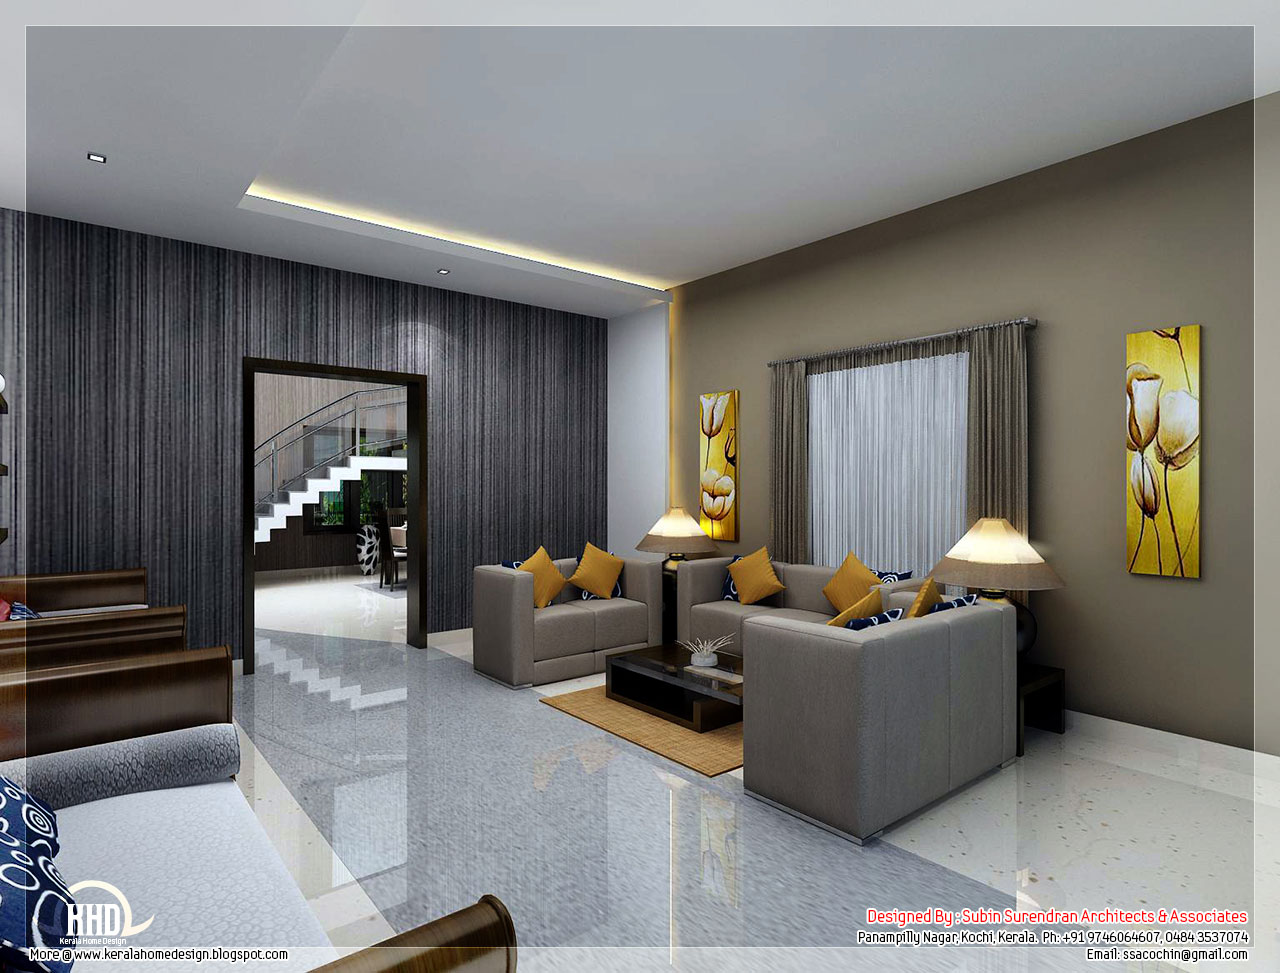 Awesome 3d interior renderings kerala house design - Interior living room design ideas ...